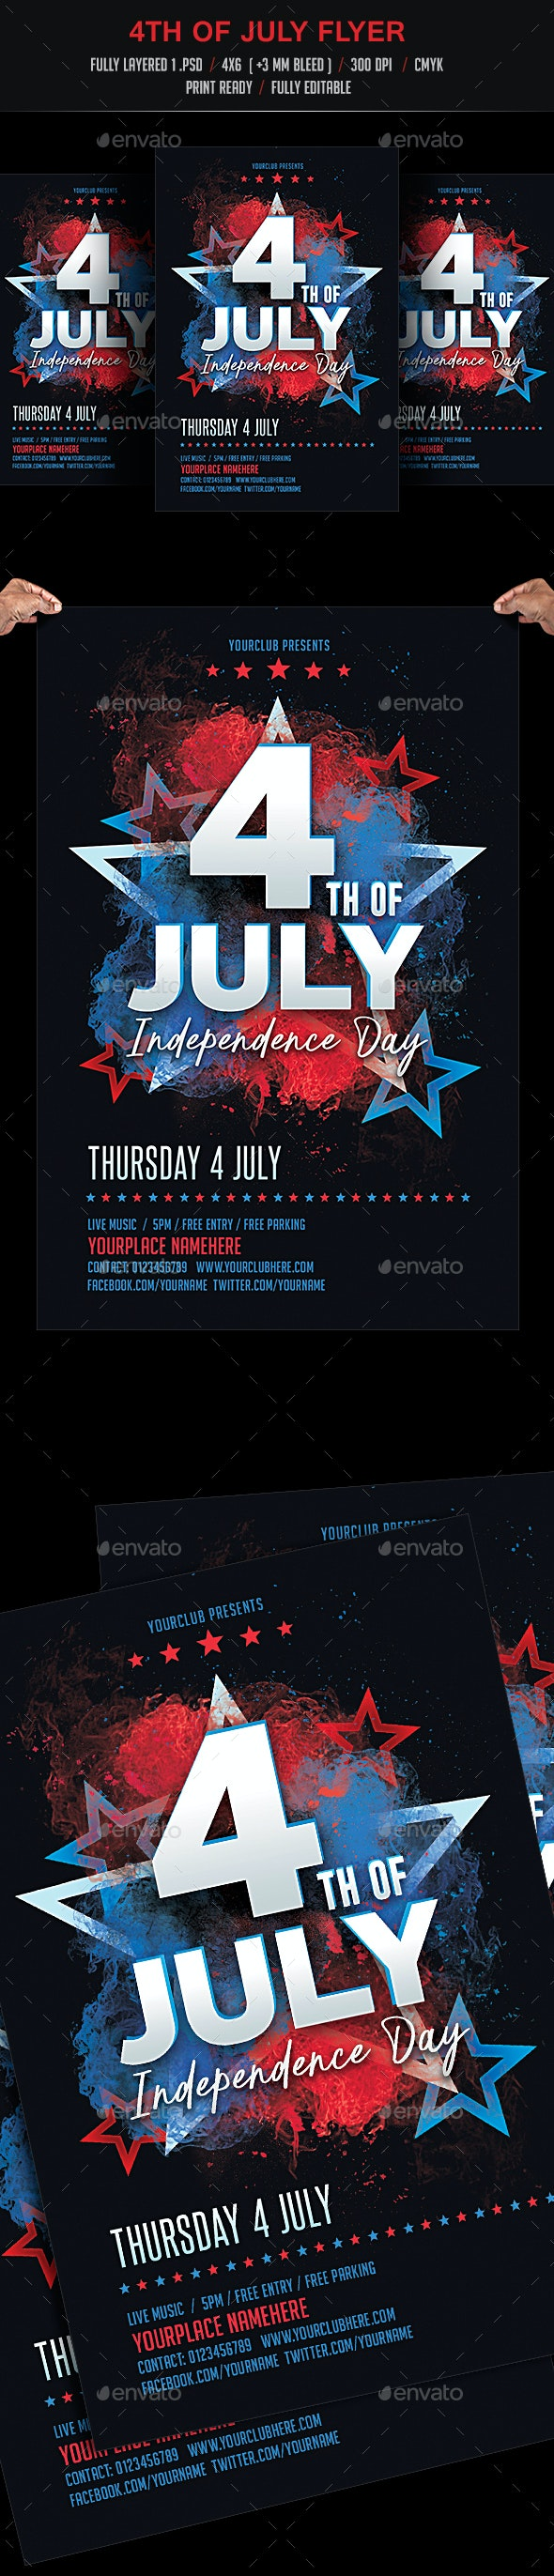 July 4th Flyer Template - Events Flyers